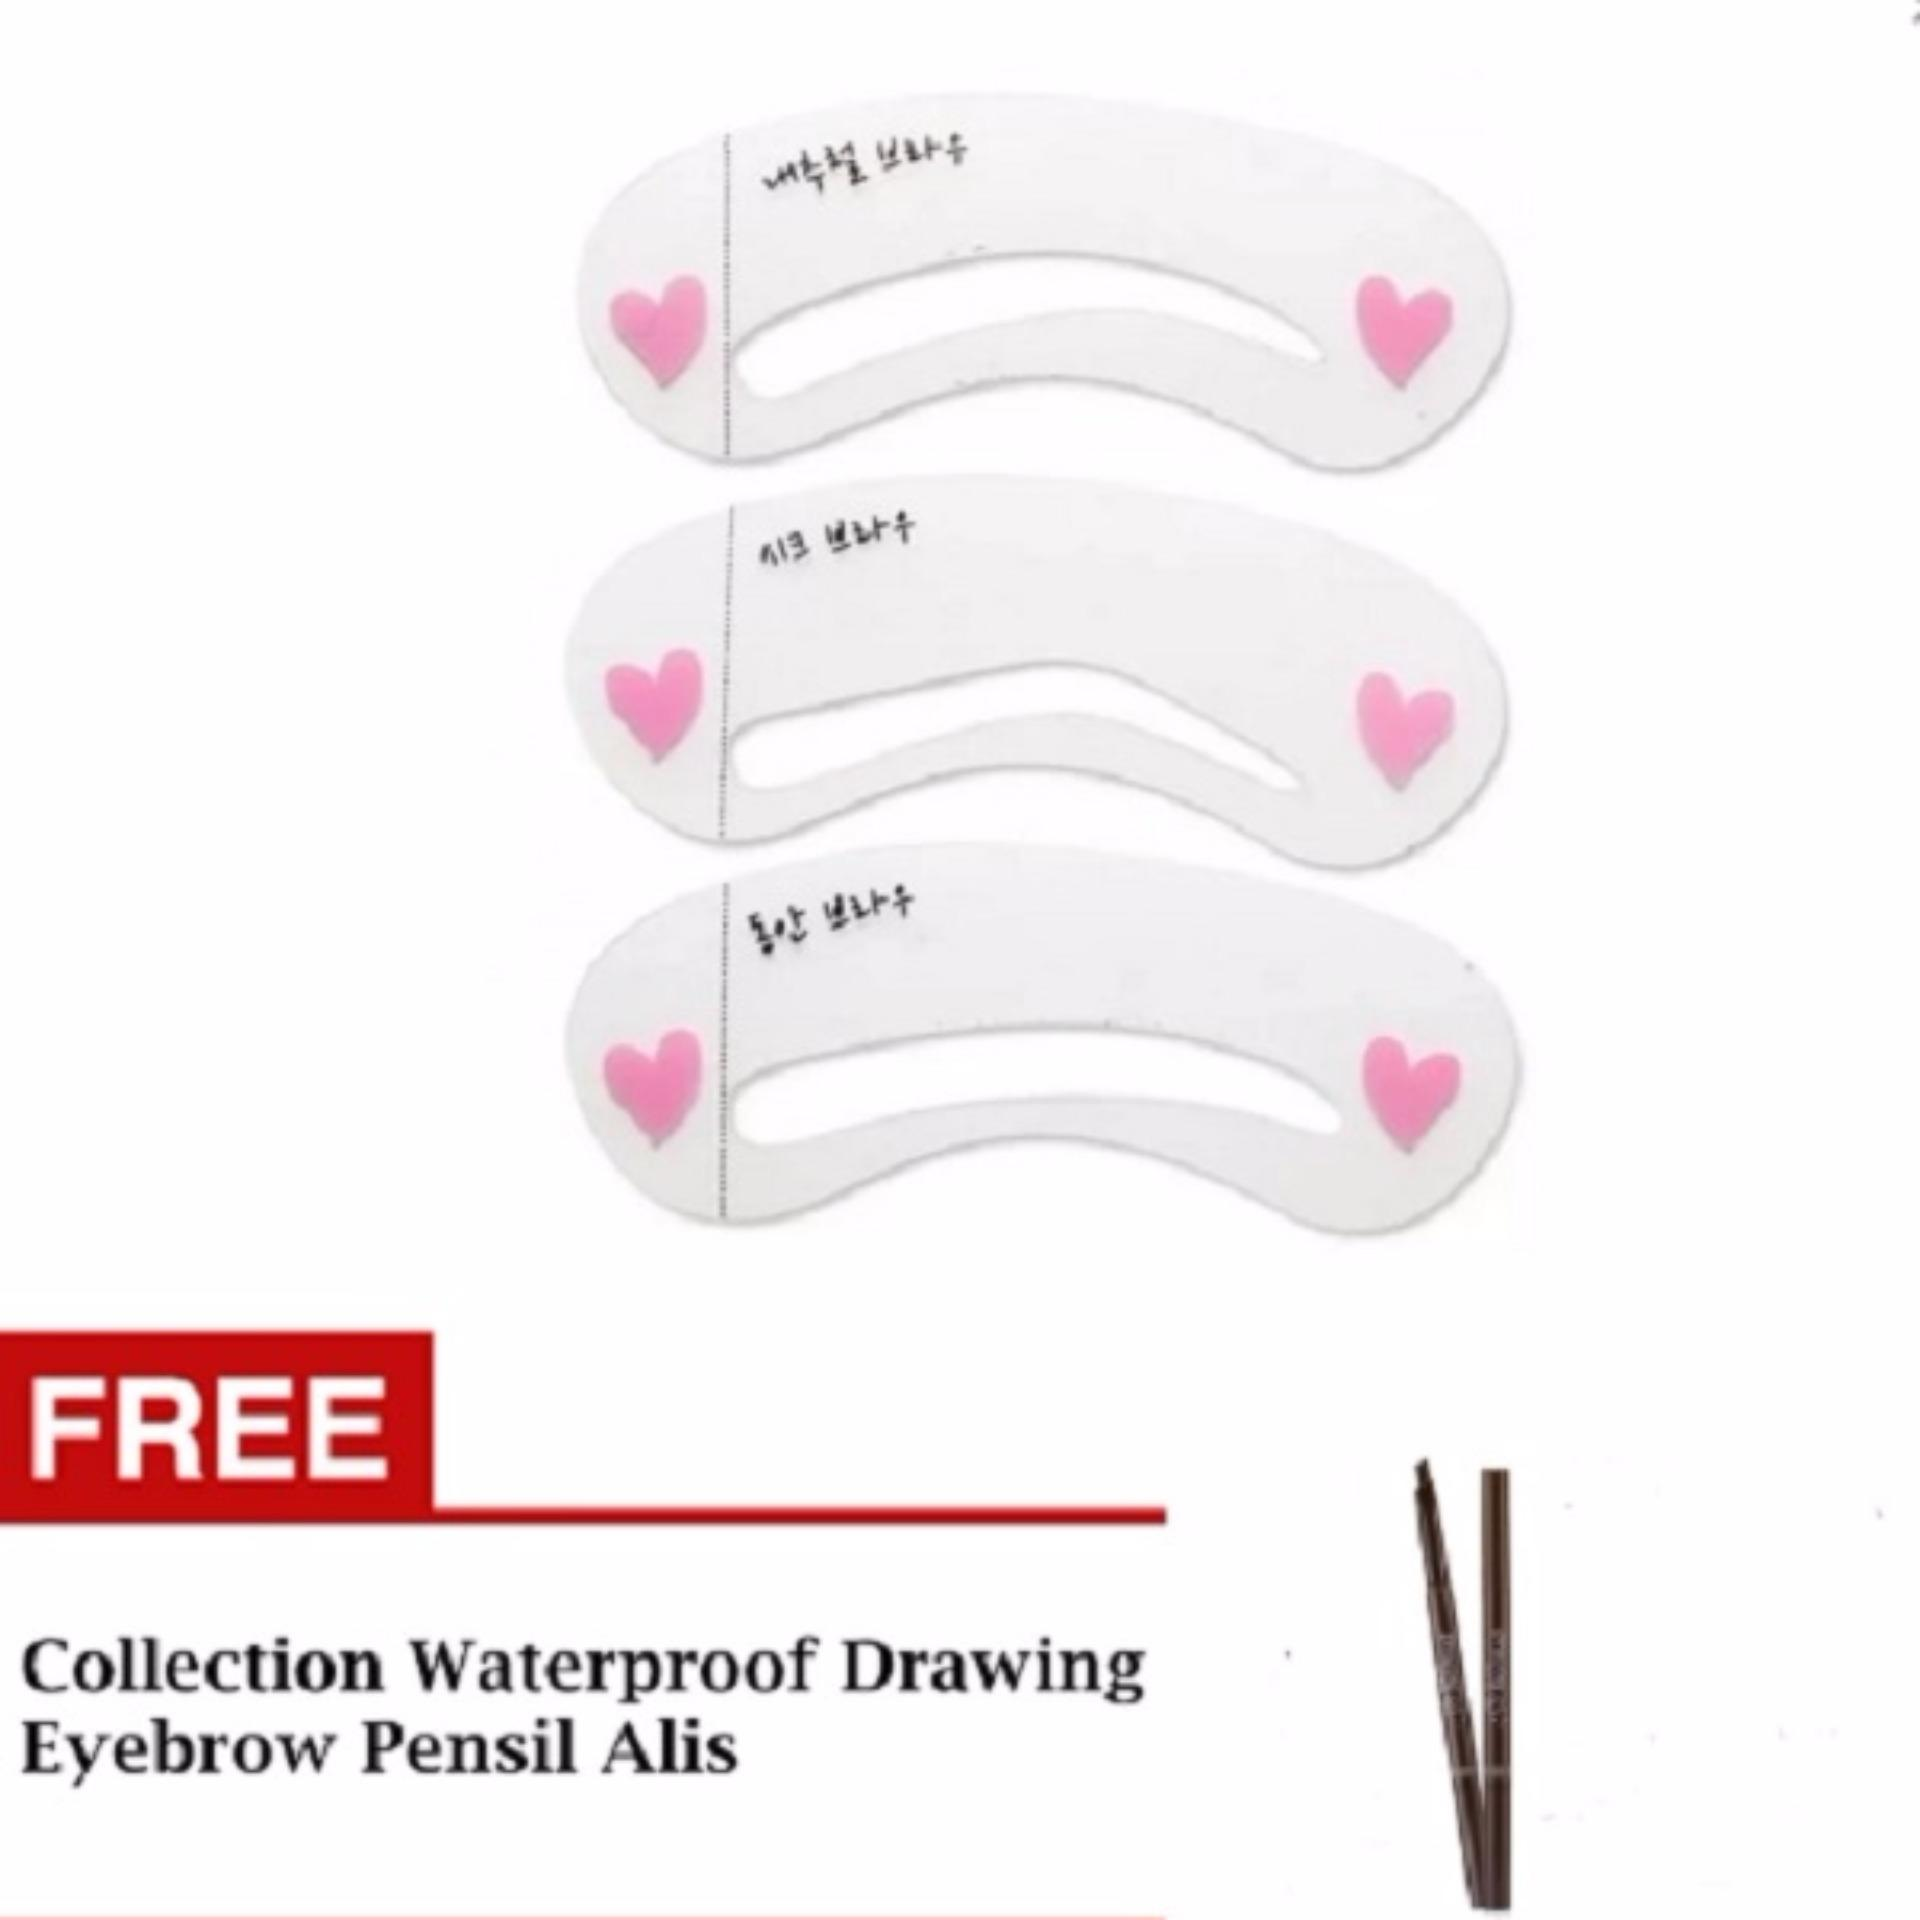 Jbs Mini Cetakan Alis Brow Class Pembersih Kuas Make Up Multi Colour Set 3 Mix Praktis Dan Simpel Penggunaan Nya Hg Eyebrow Stencil Pcs